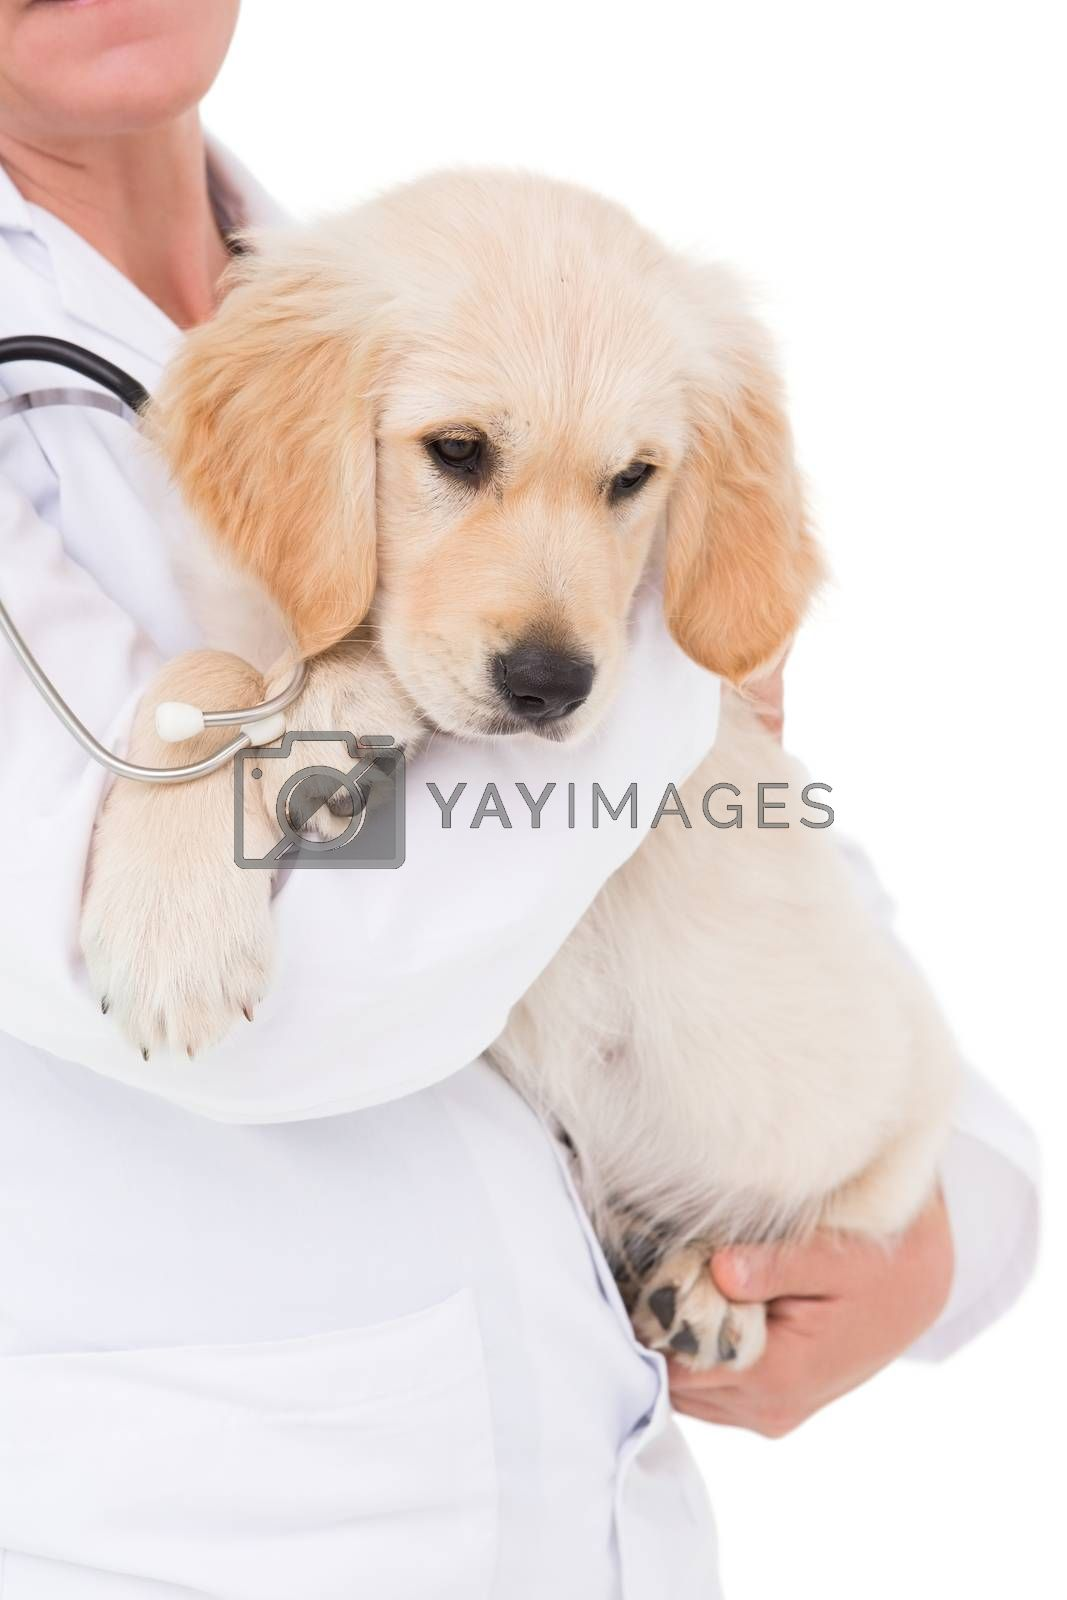 Veterinarian with a cute dog in her arms on white background